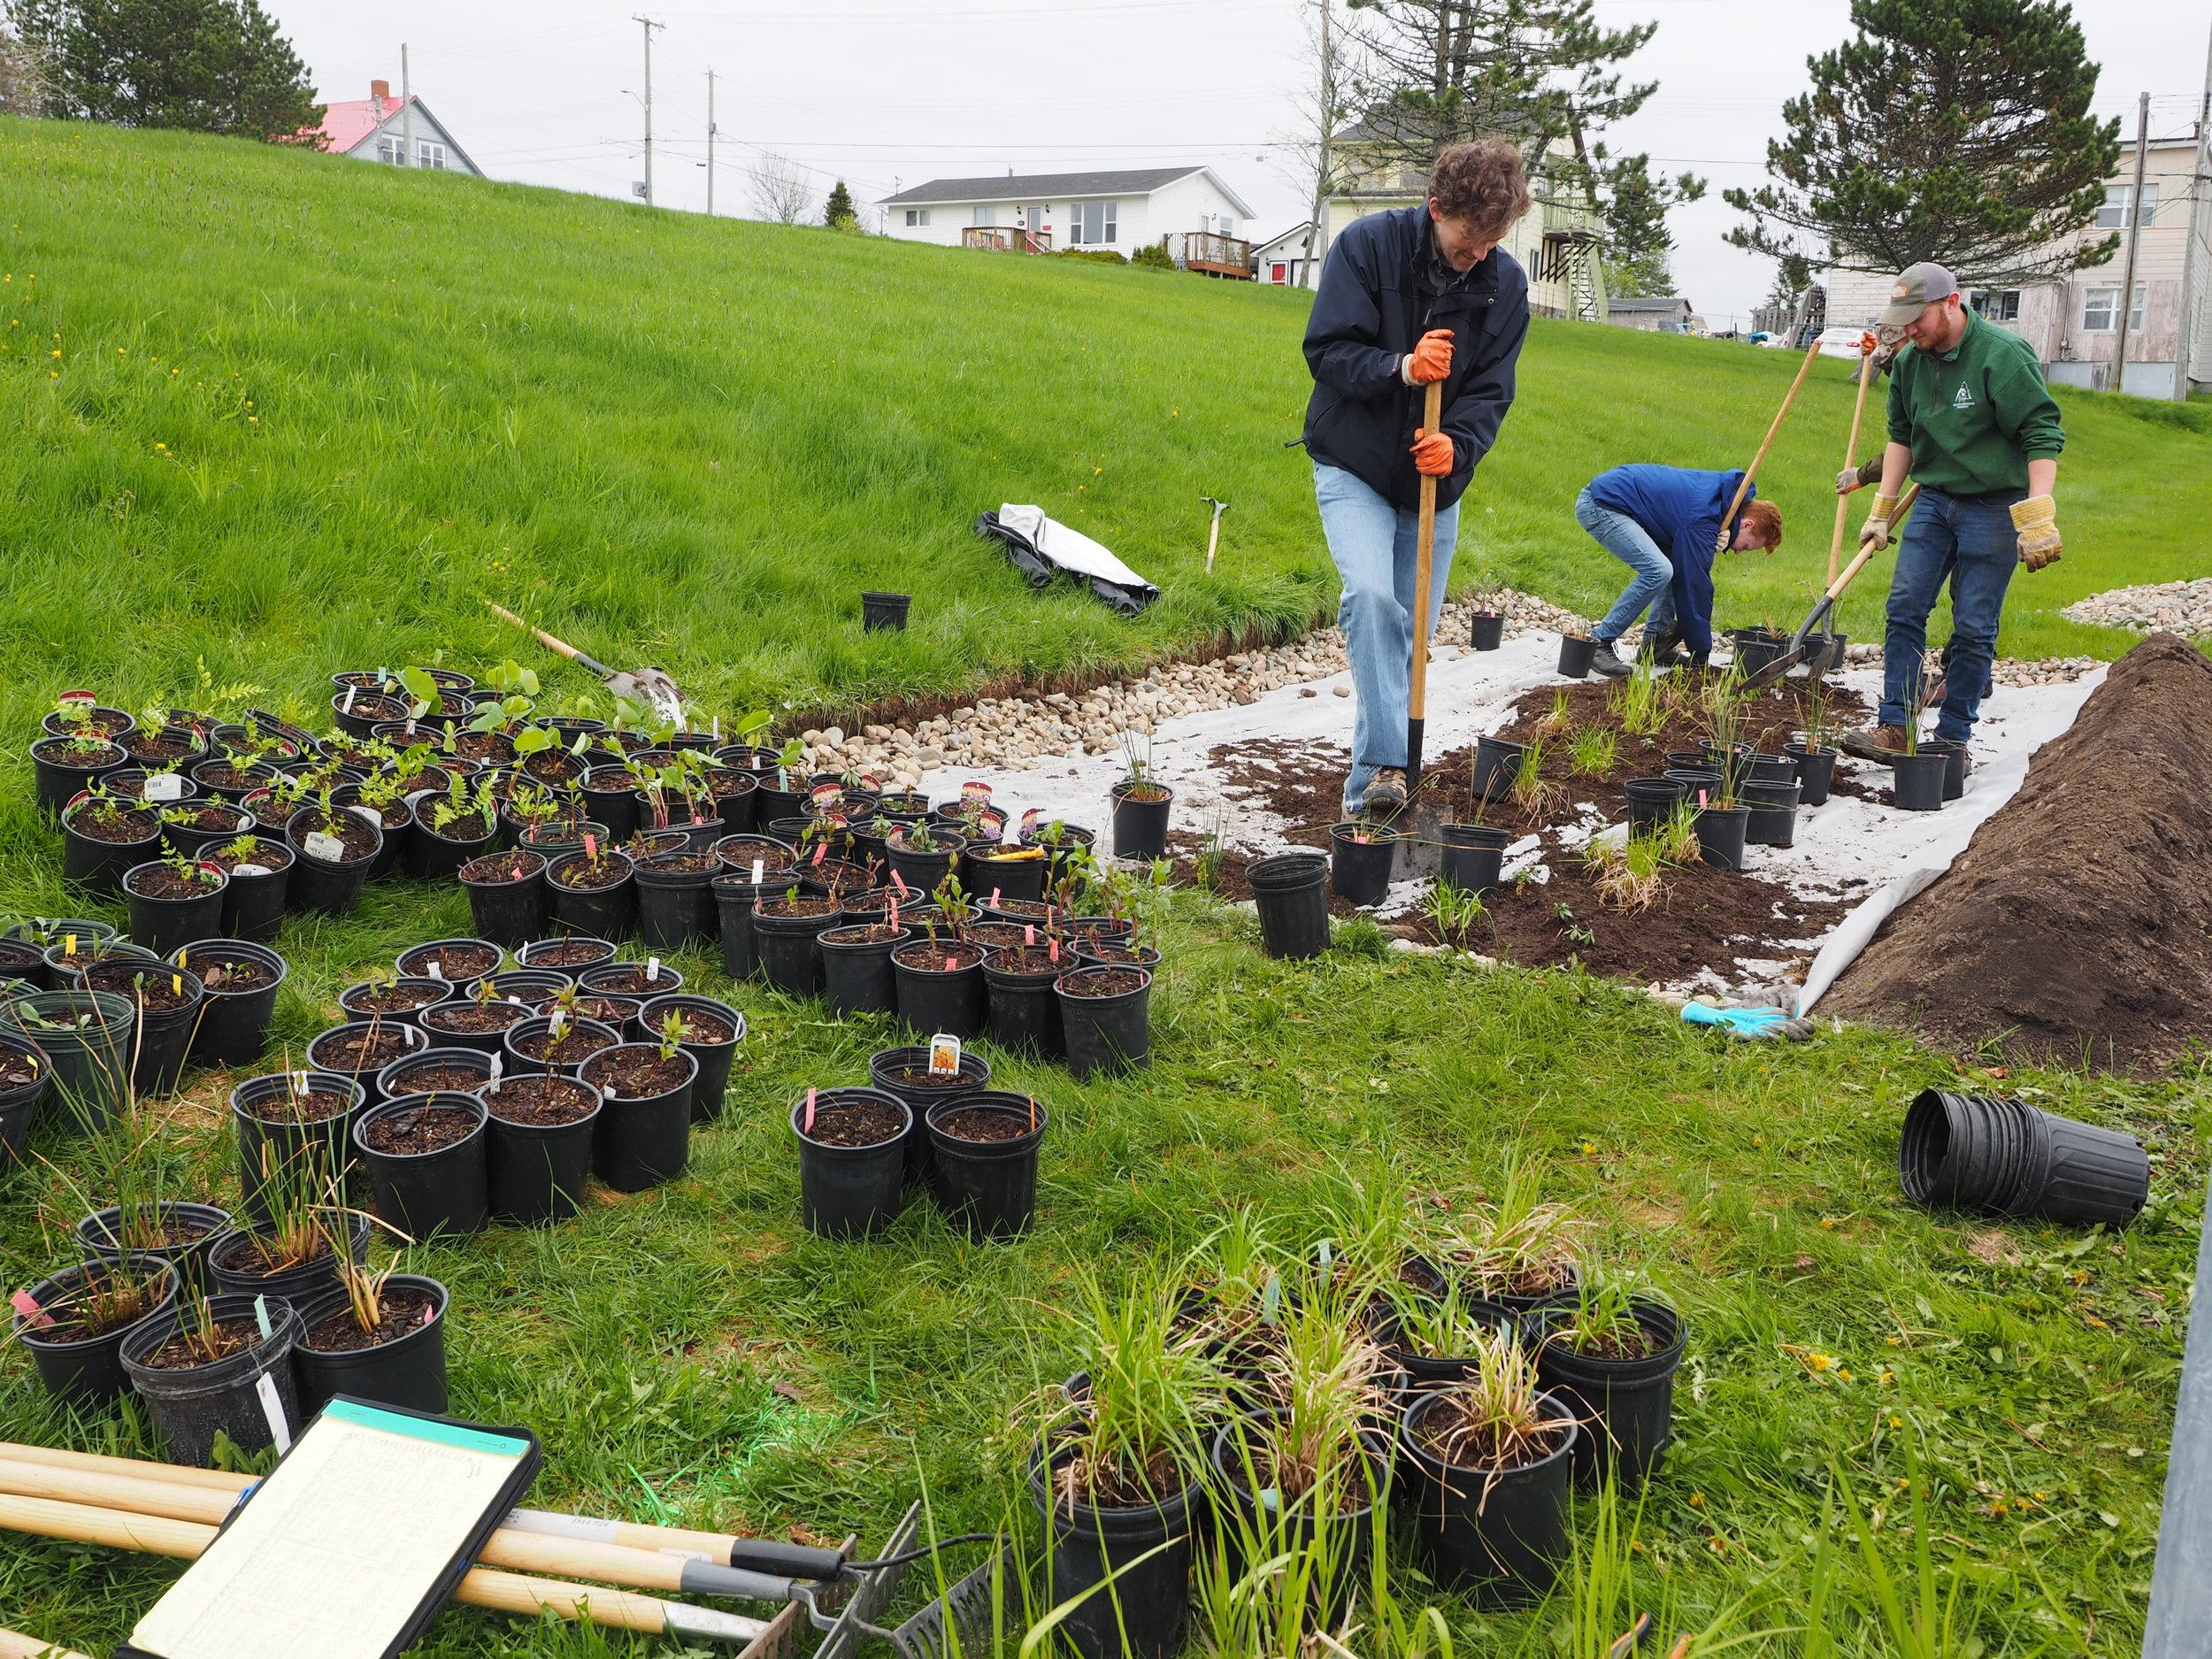 Volunteers planting 200 perennial flowers, grasses and ferns to go into the garden.